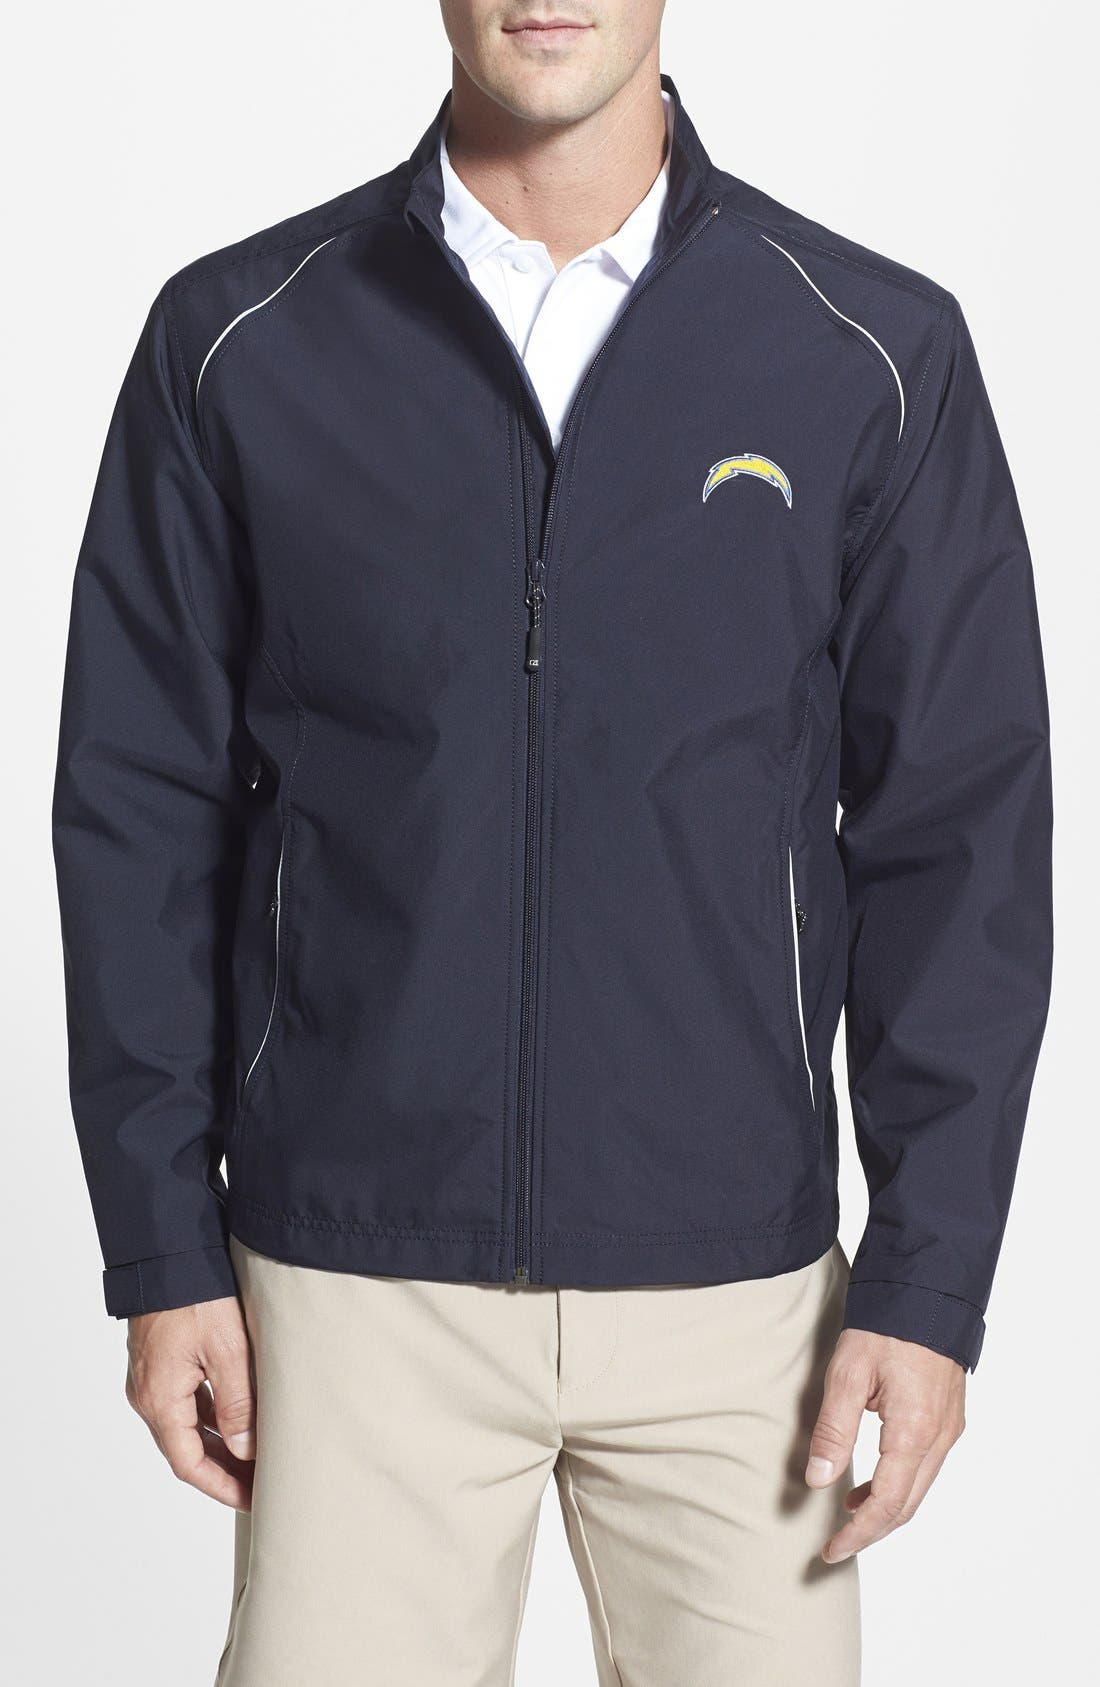 San Diego Chargers - Beacon WeatherTec Wind & Water Resistant Jacket,                         Main,                         color, Navy Blue